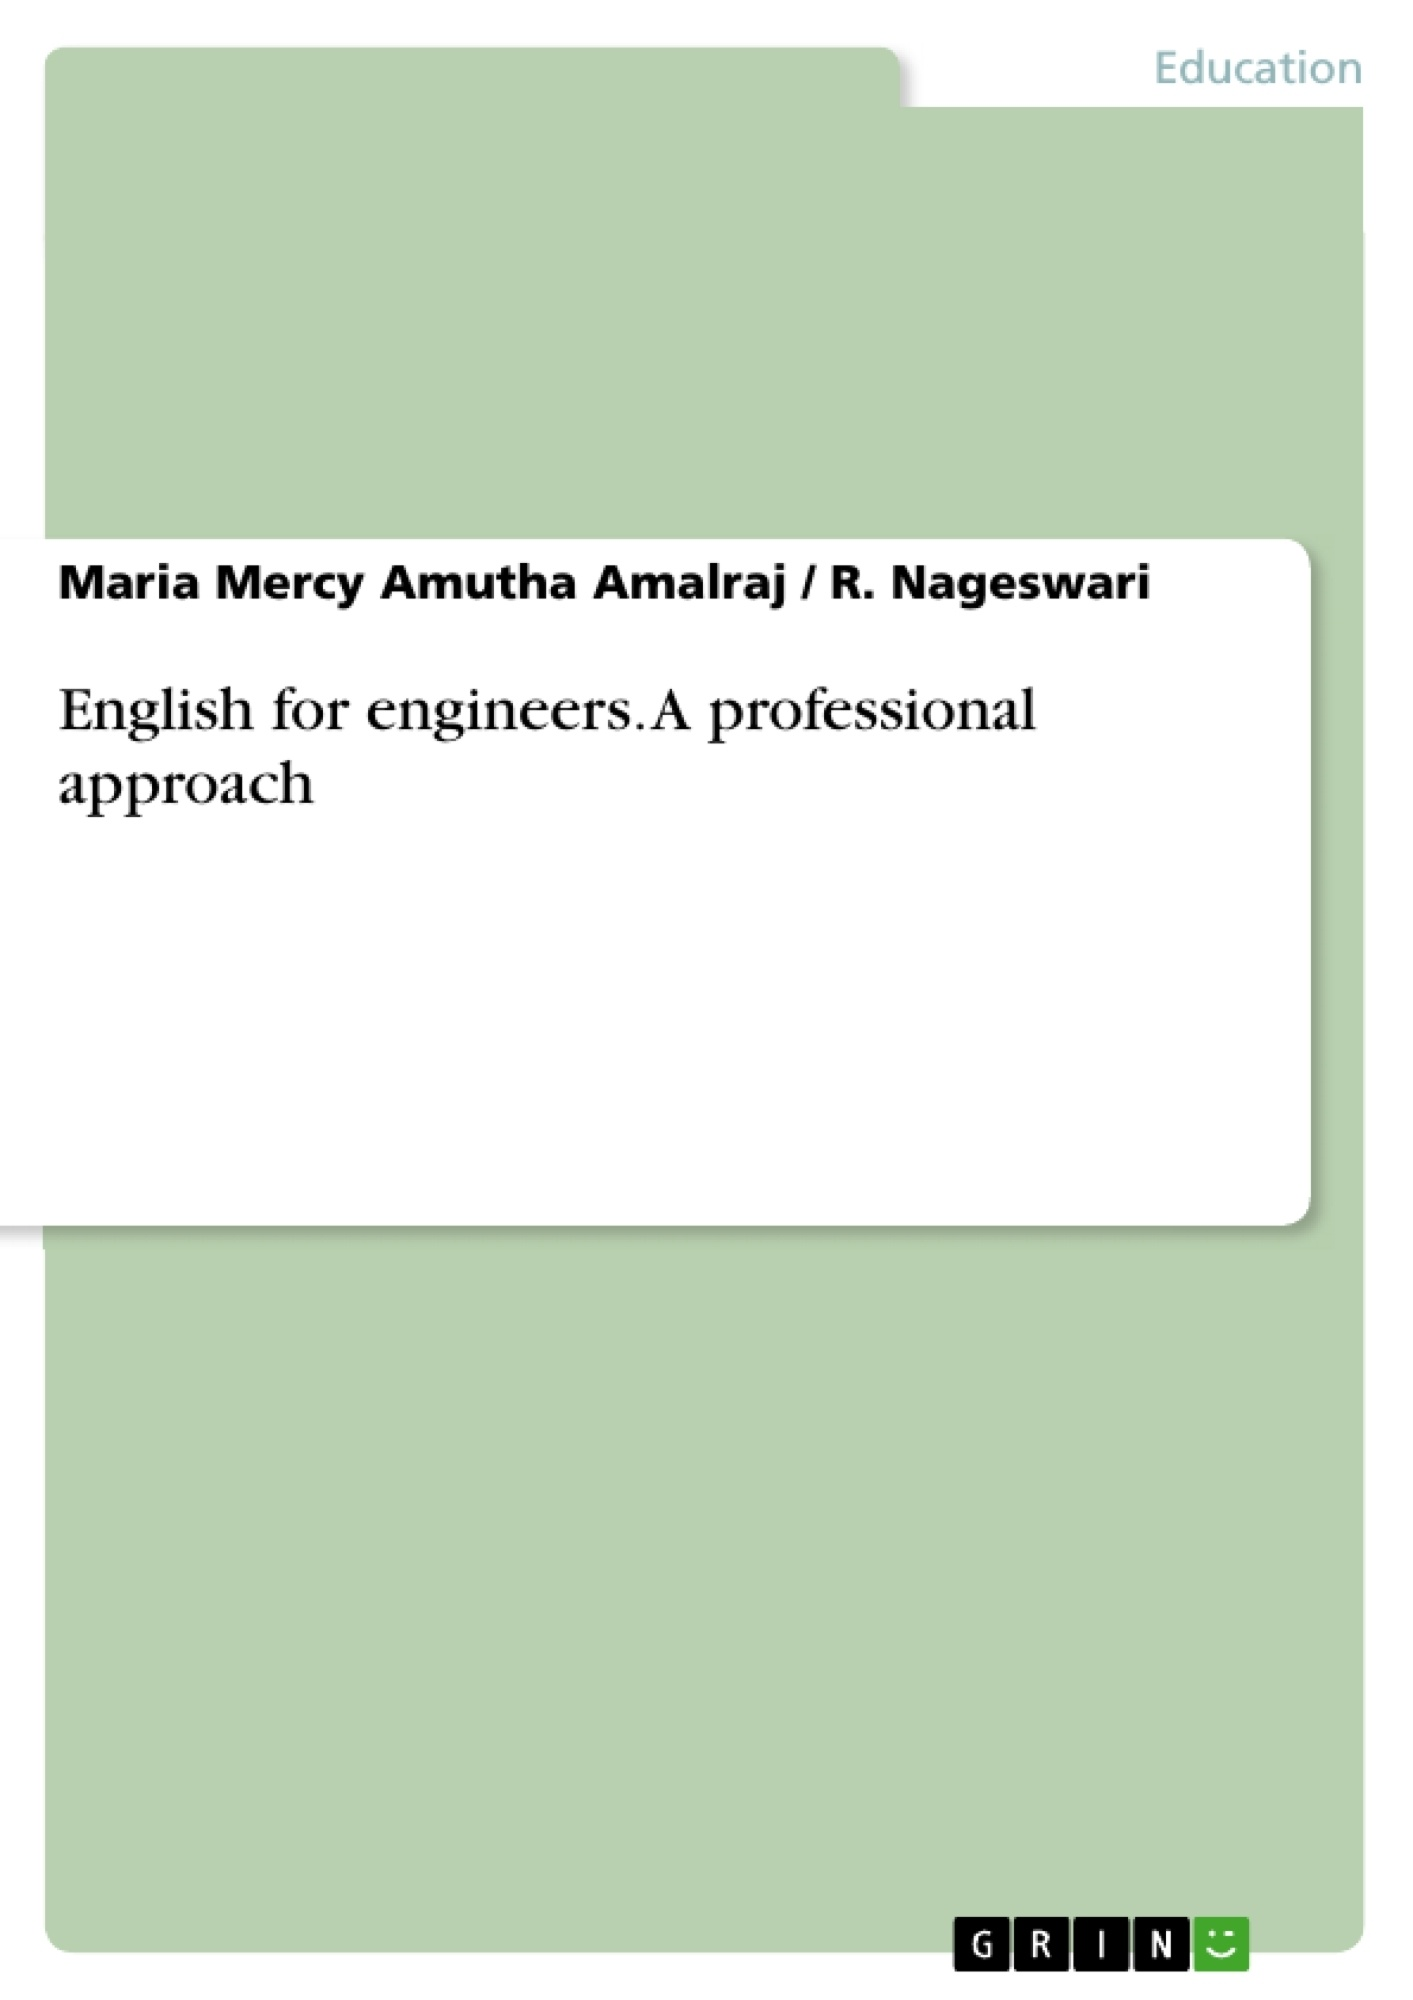 Title: English for engineers. A professional approach